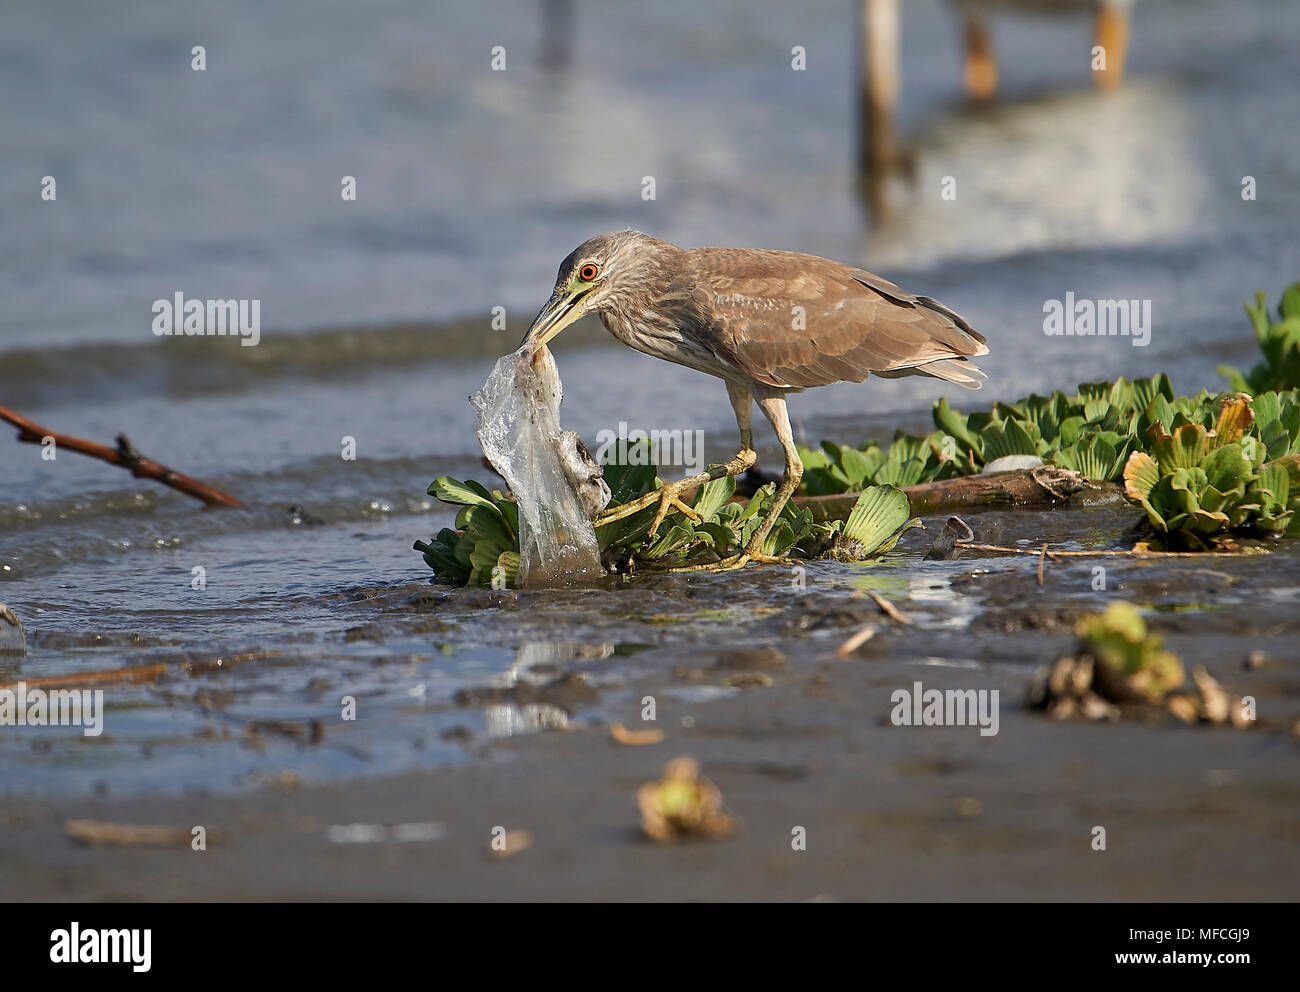 Immature Black-crowned Night Heron (Nycticorax nycticorax) attempts to swallow a plastic bag - Stock Image